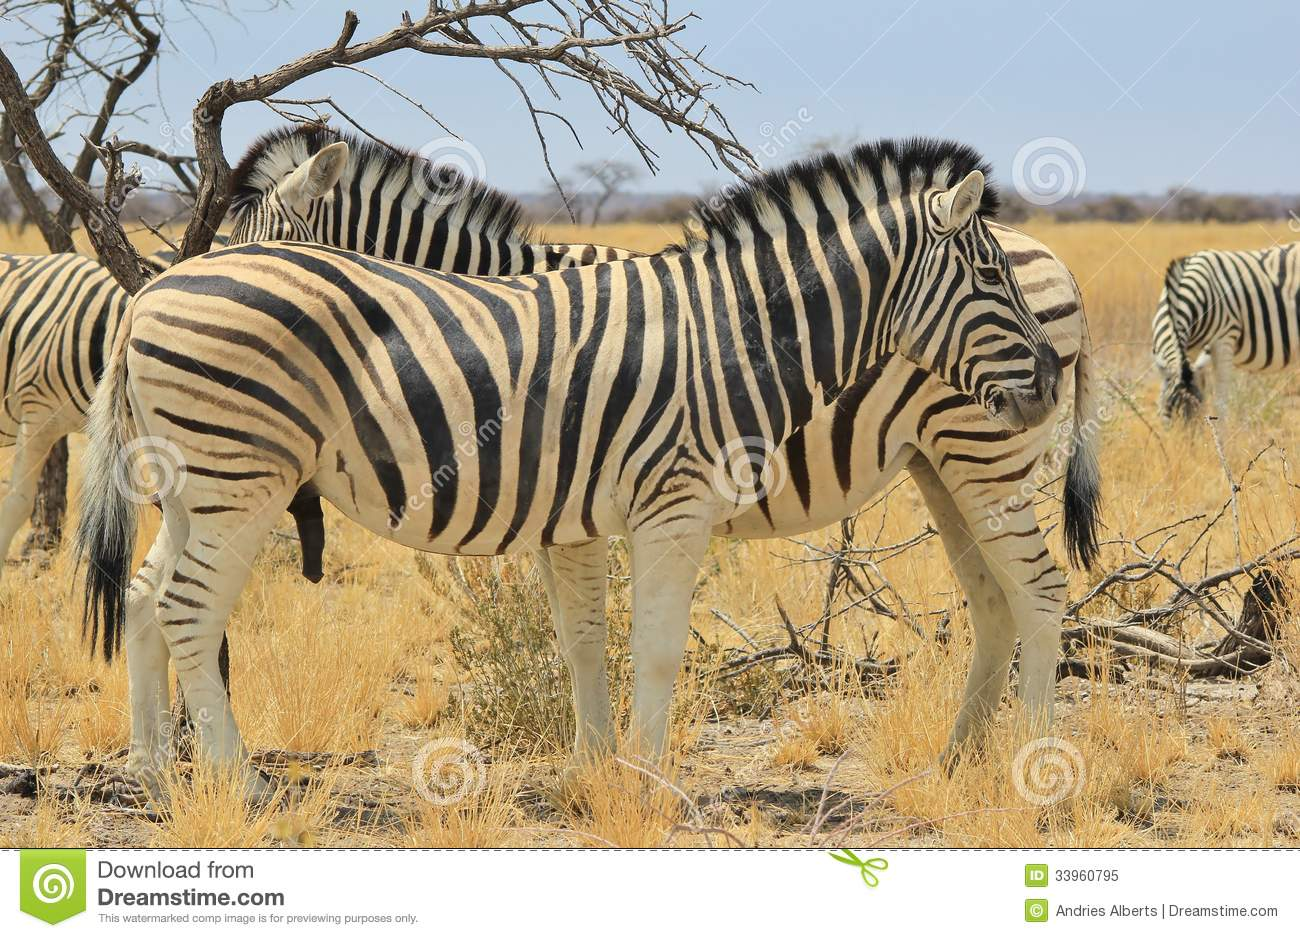 Zebra - Wildlife Background from Africa - Beautiful Stallion double stripes